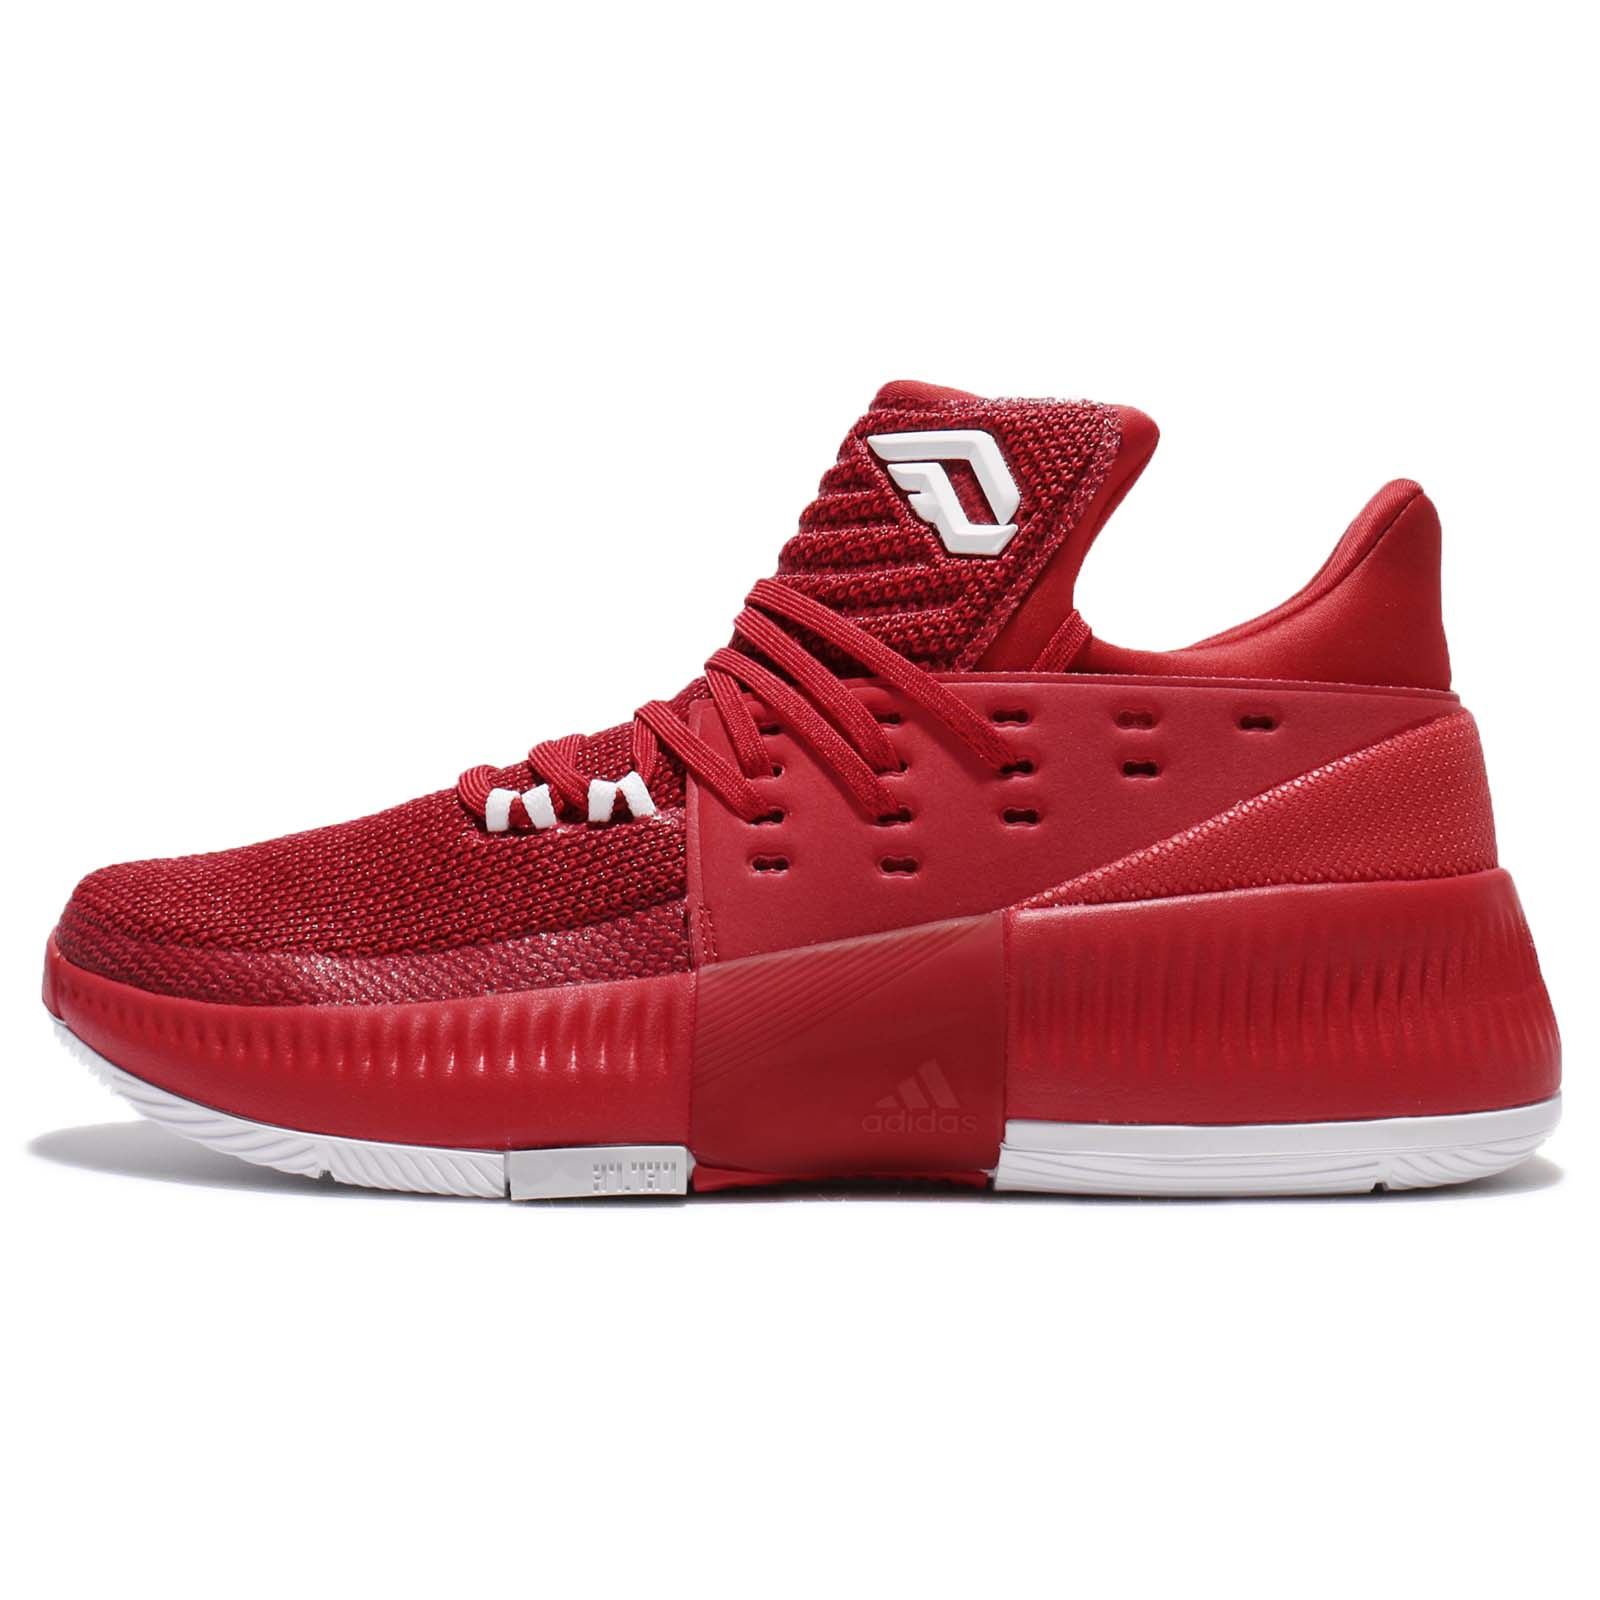 Damian Lillard Red Shoes Size